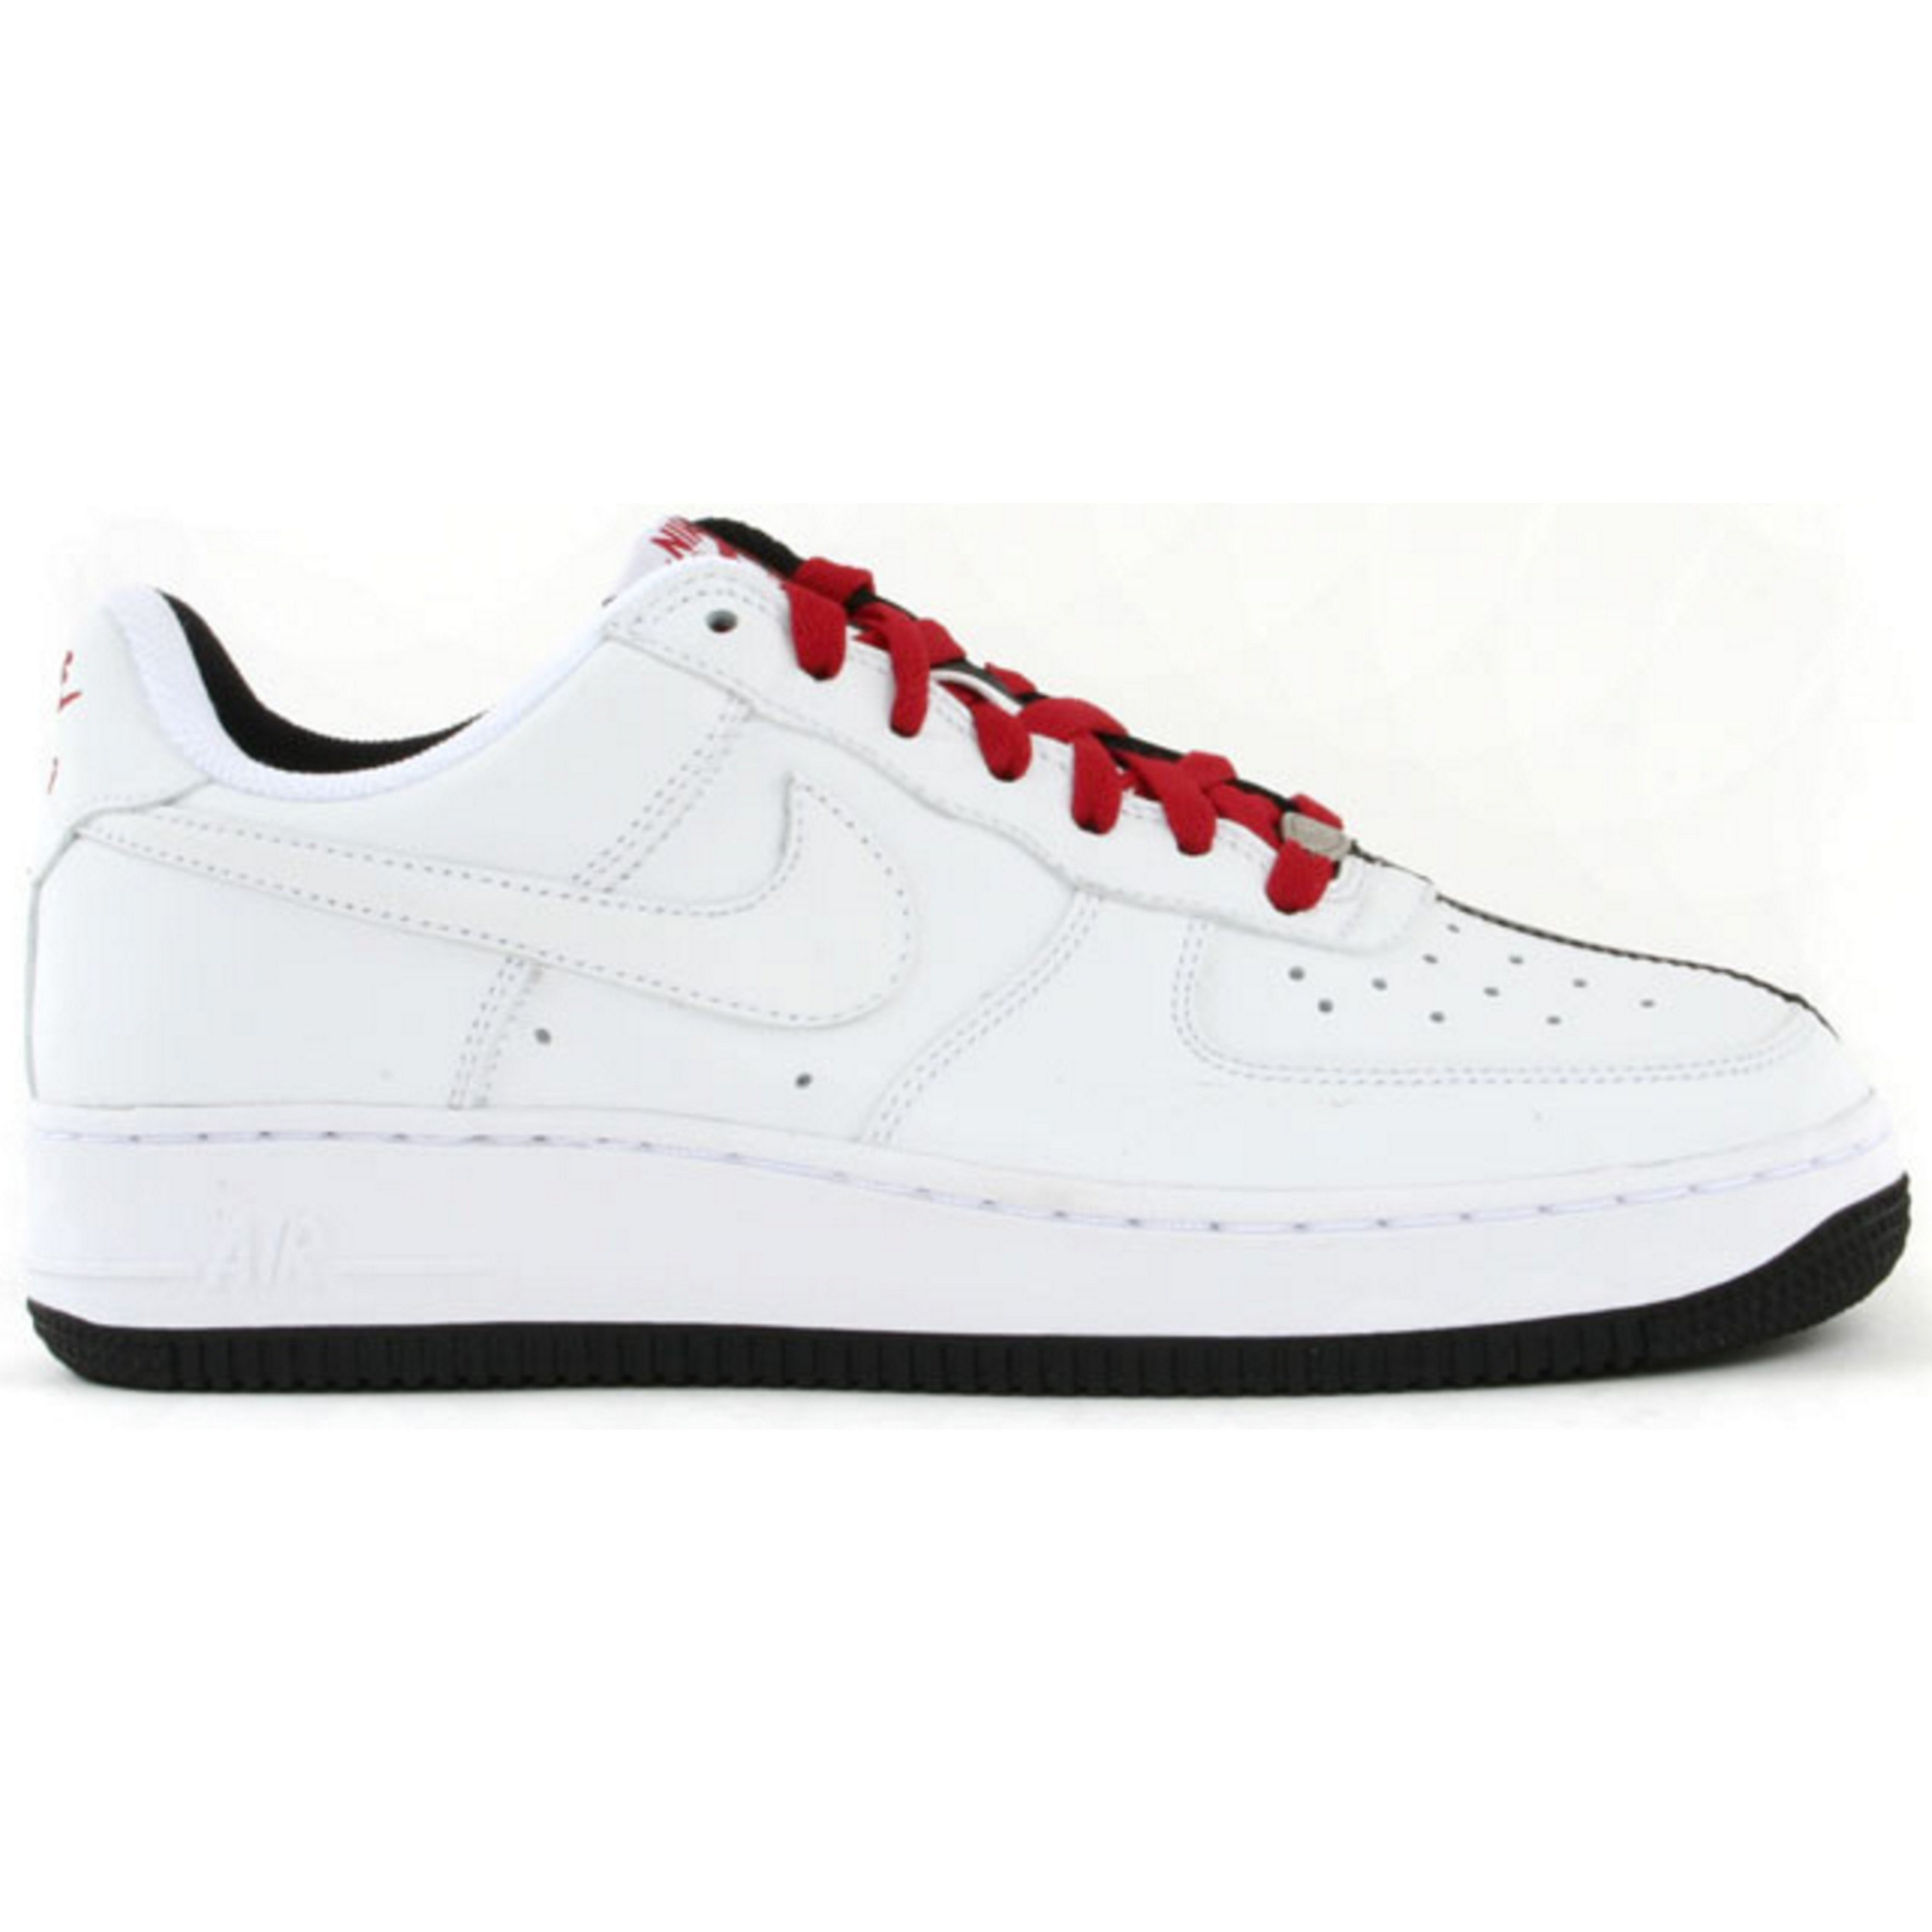 Nike Air Force 1 Low Scarface (GS) (310577-101)